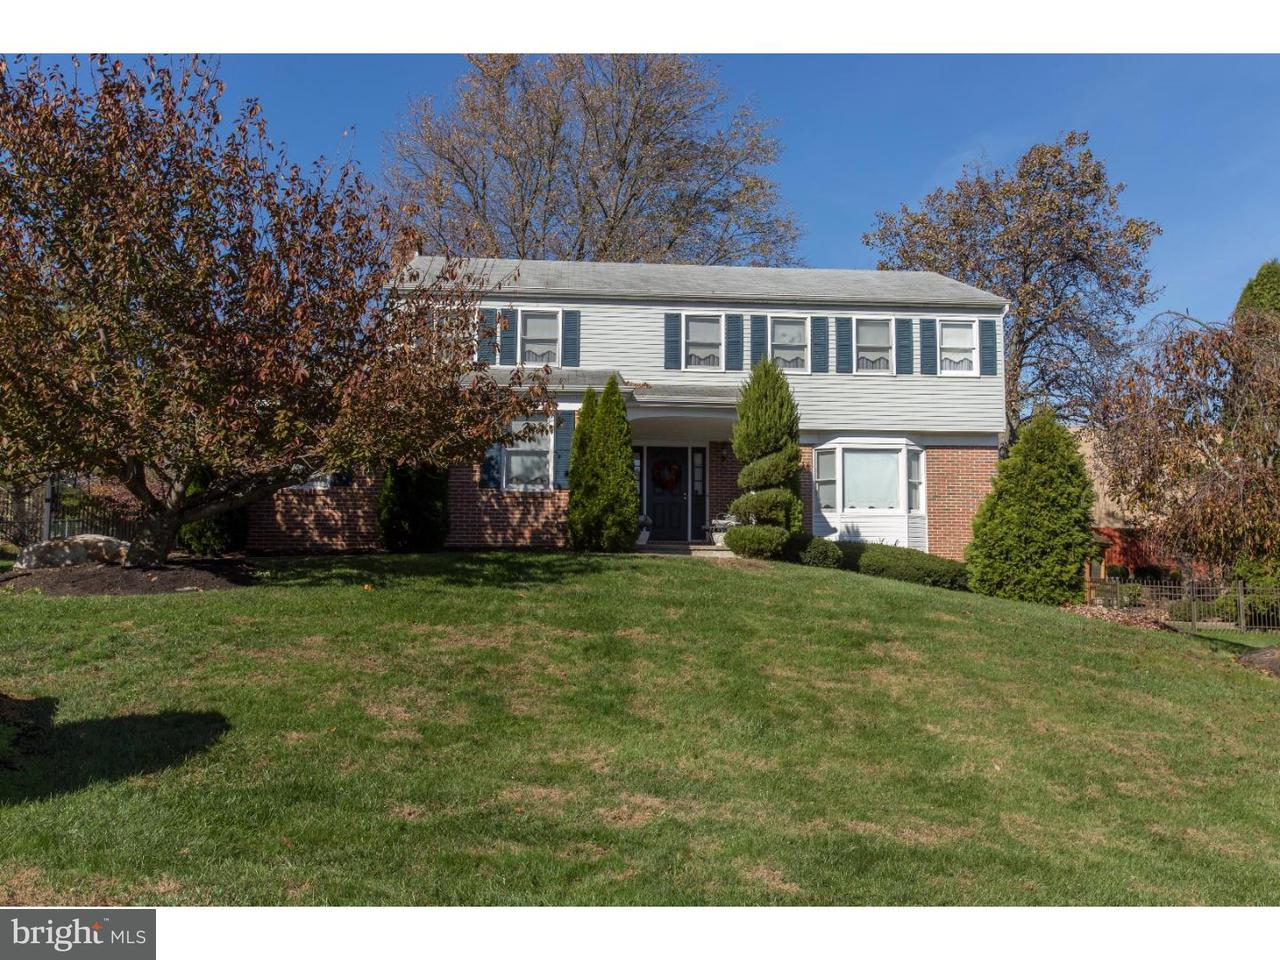 Single Family Home for Sale at 100 ACADEMY Lane Broomall, Pennsylvania 19008 United States